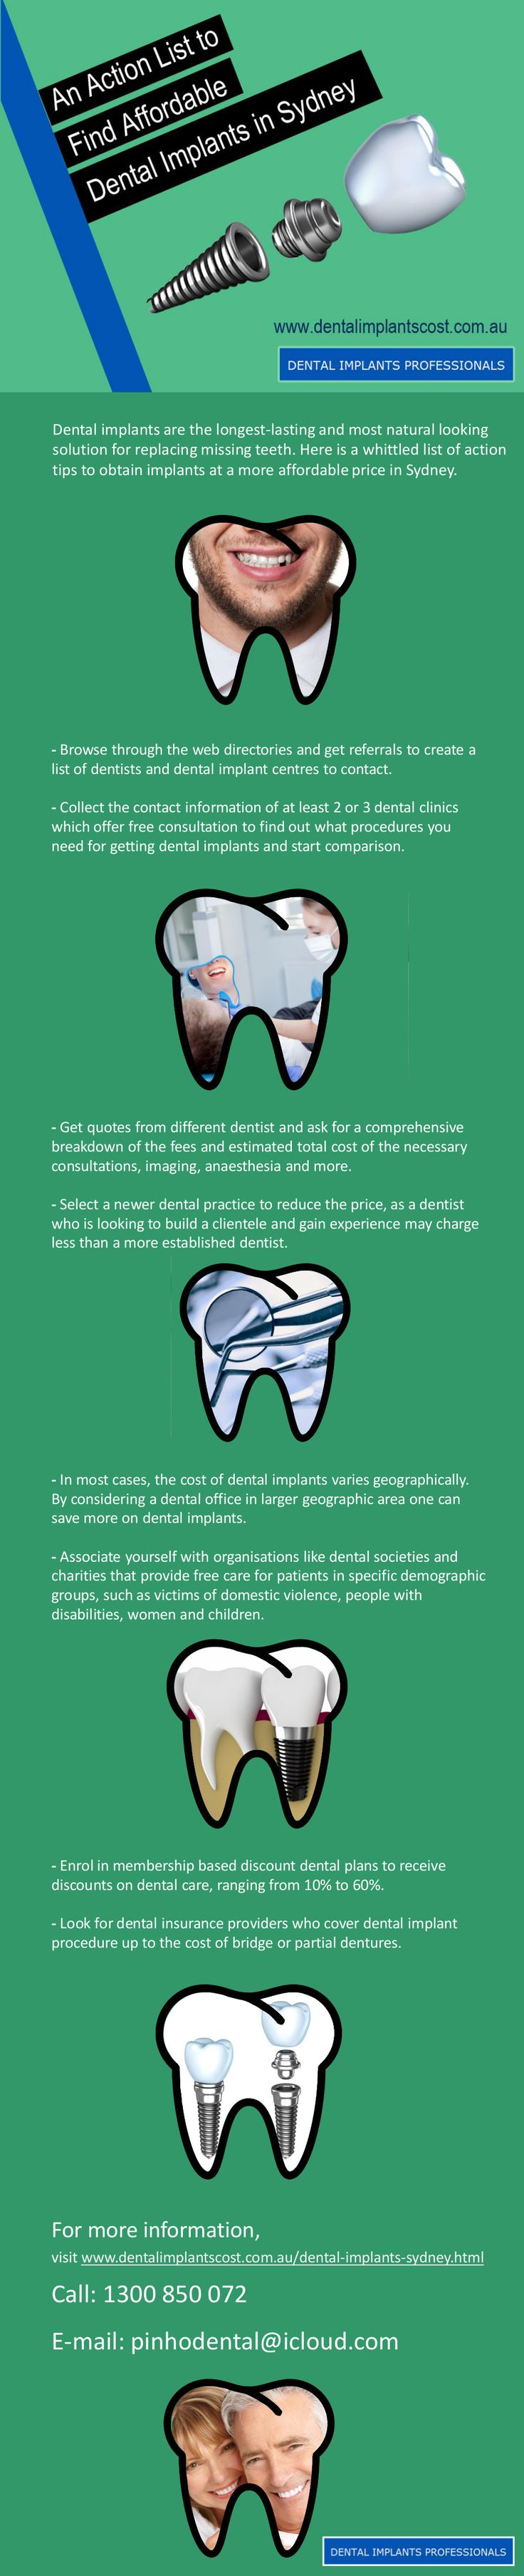 Action List to Find Affordable Dental Implants in Sydney  -  Looking for an affordable dental implant procedure to quickly replace your chipped or missing teeth? Read this write up now to find the tips that help you to find a low cost dental implant in Sydney. Visit http://www.dentalimplantscost.com.au